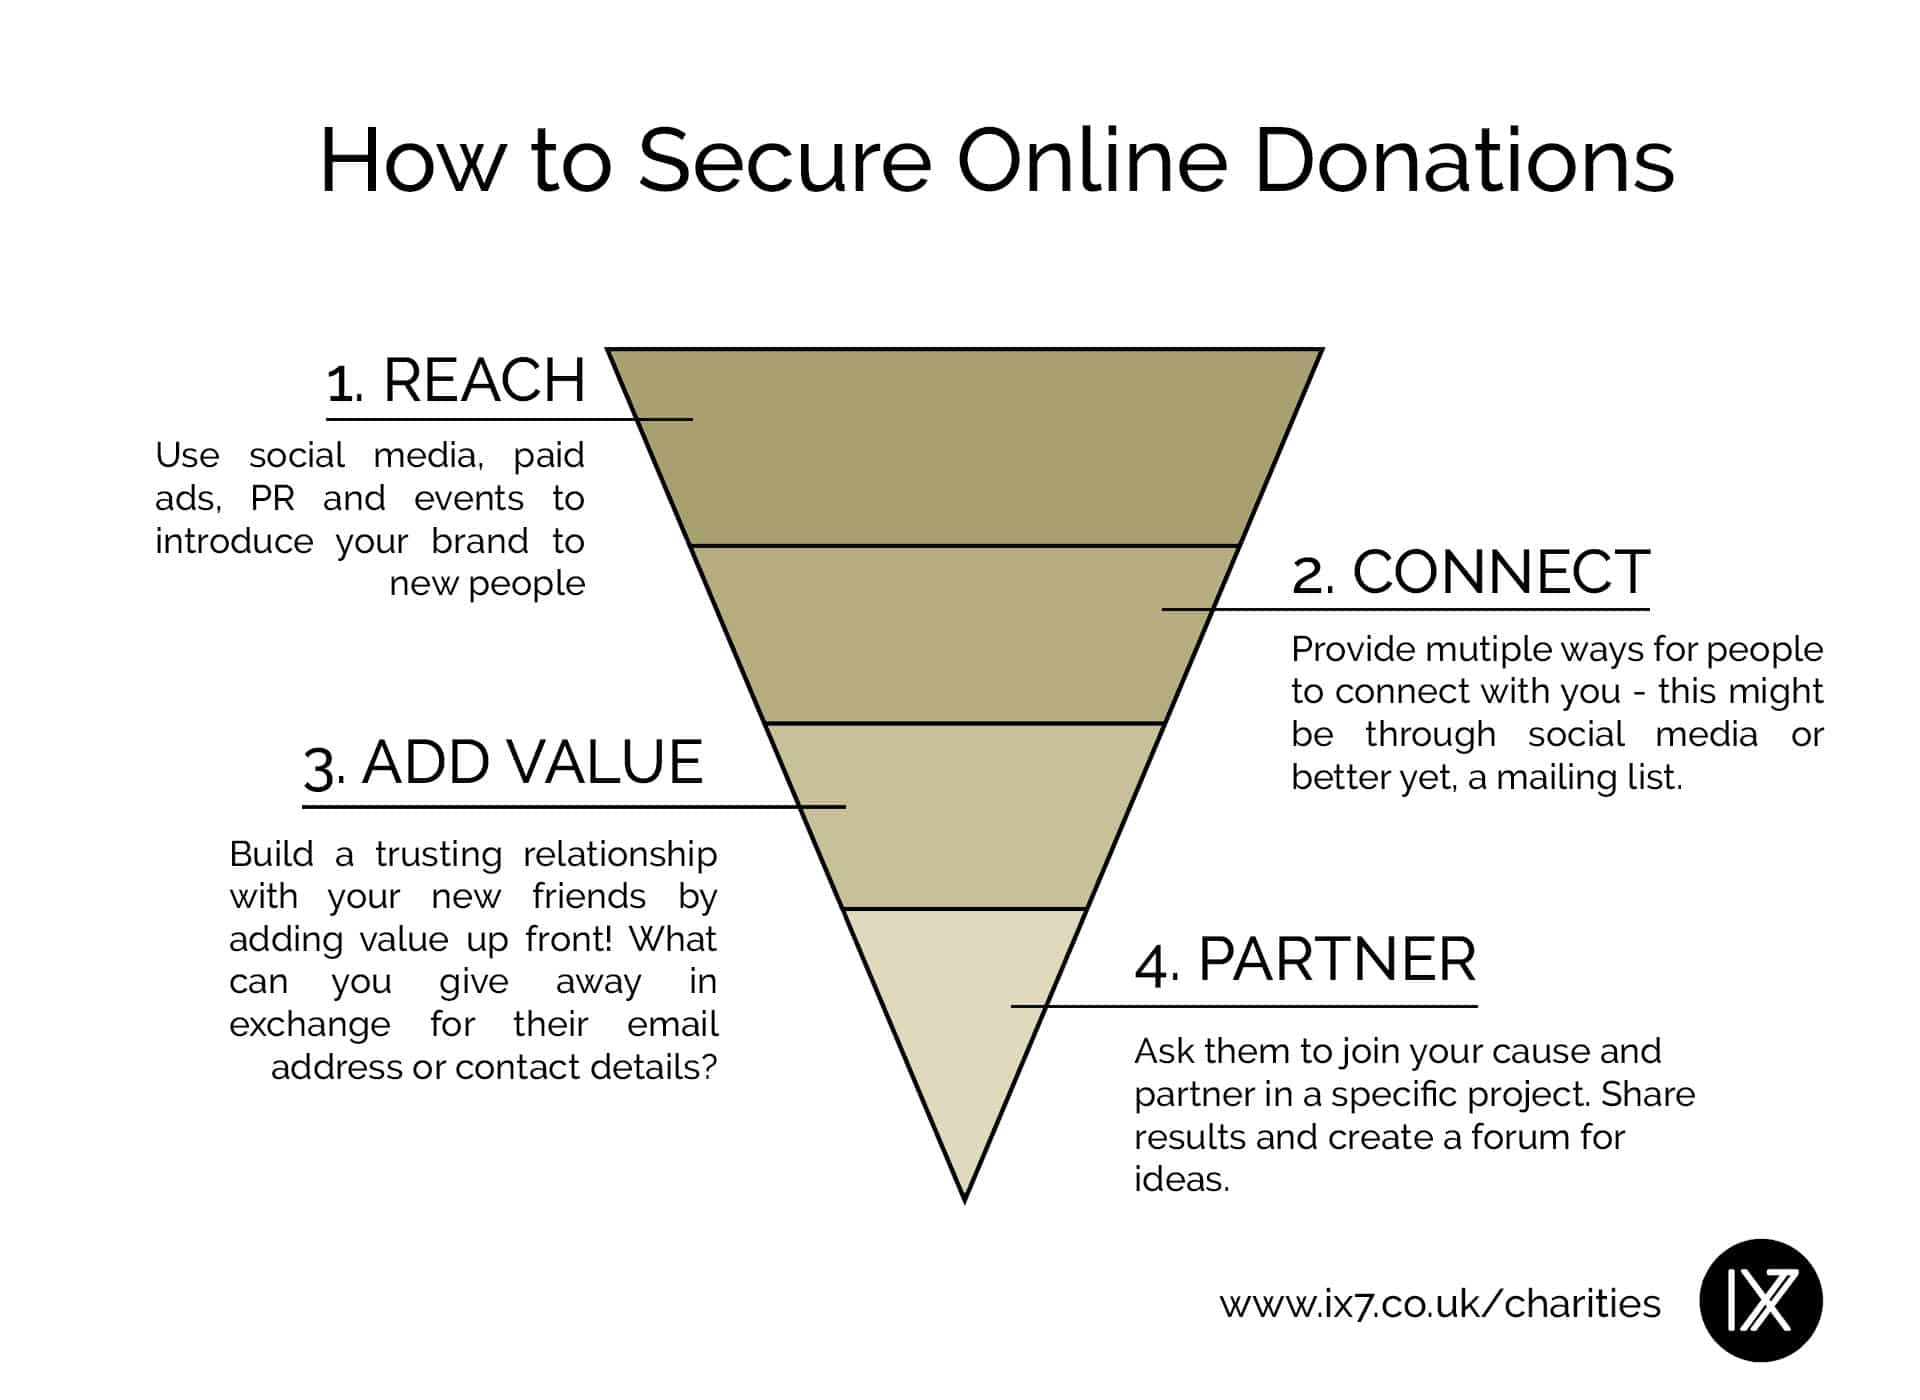 How to get online donations